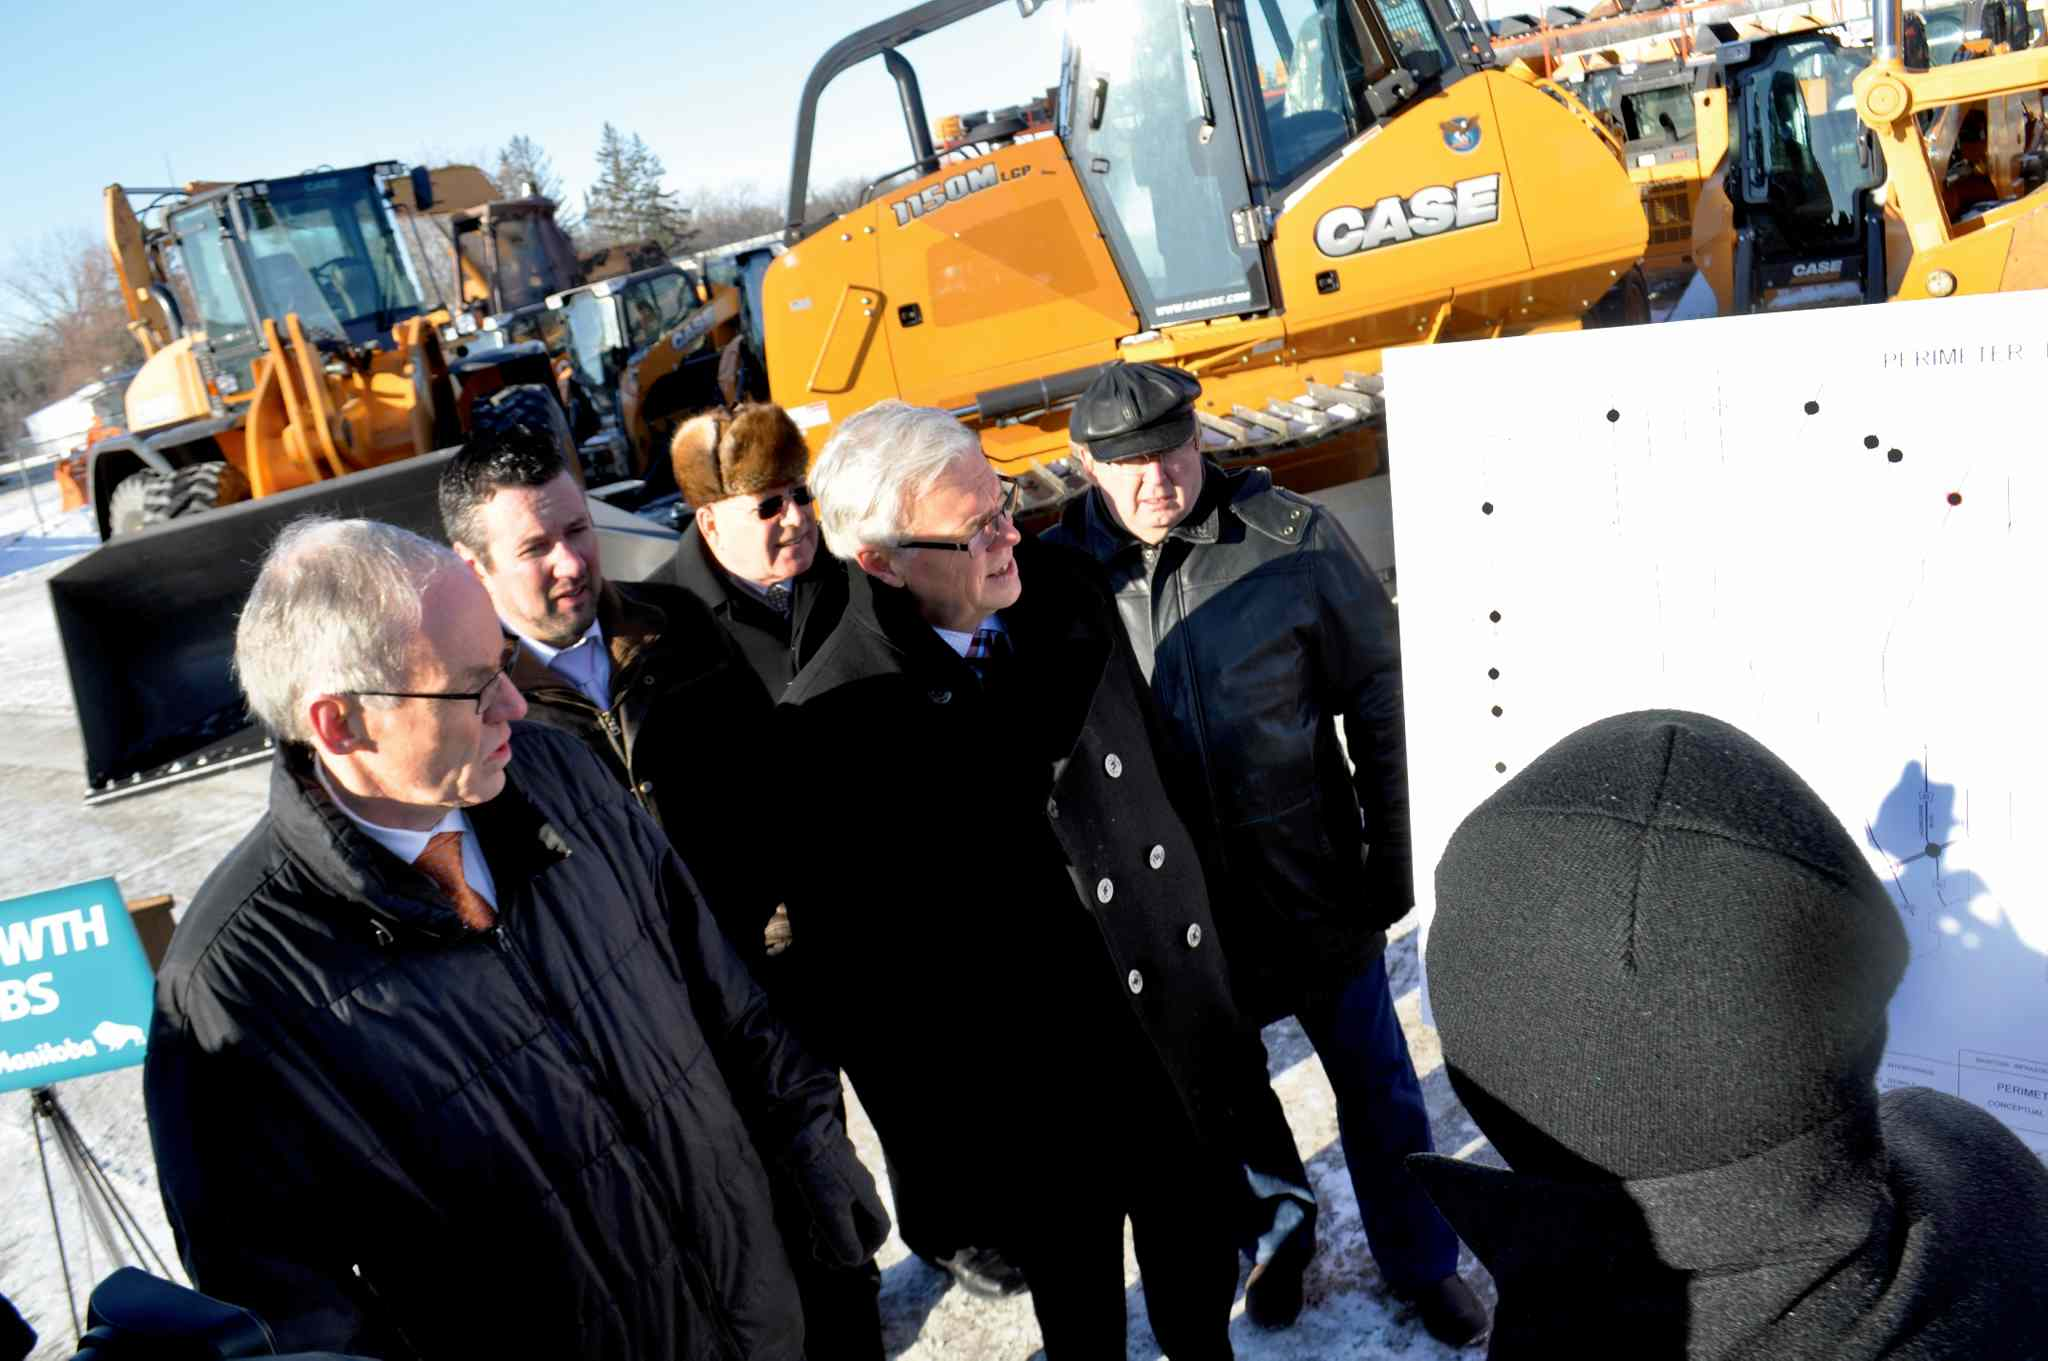 Premier Greg Selinger is joined by (l-r) Infrastructure and Transportation Minister Steve Ashton, MLA for St. Norbert Dave Gaudreau, Bob Dolyniuk of the Manitoba Trucking Association and Chris Lorenc of the Manitoba Heavy Construction Association.